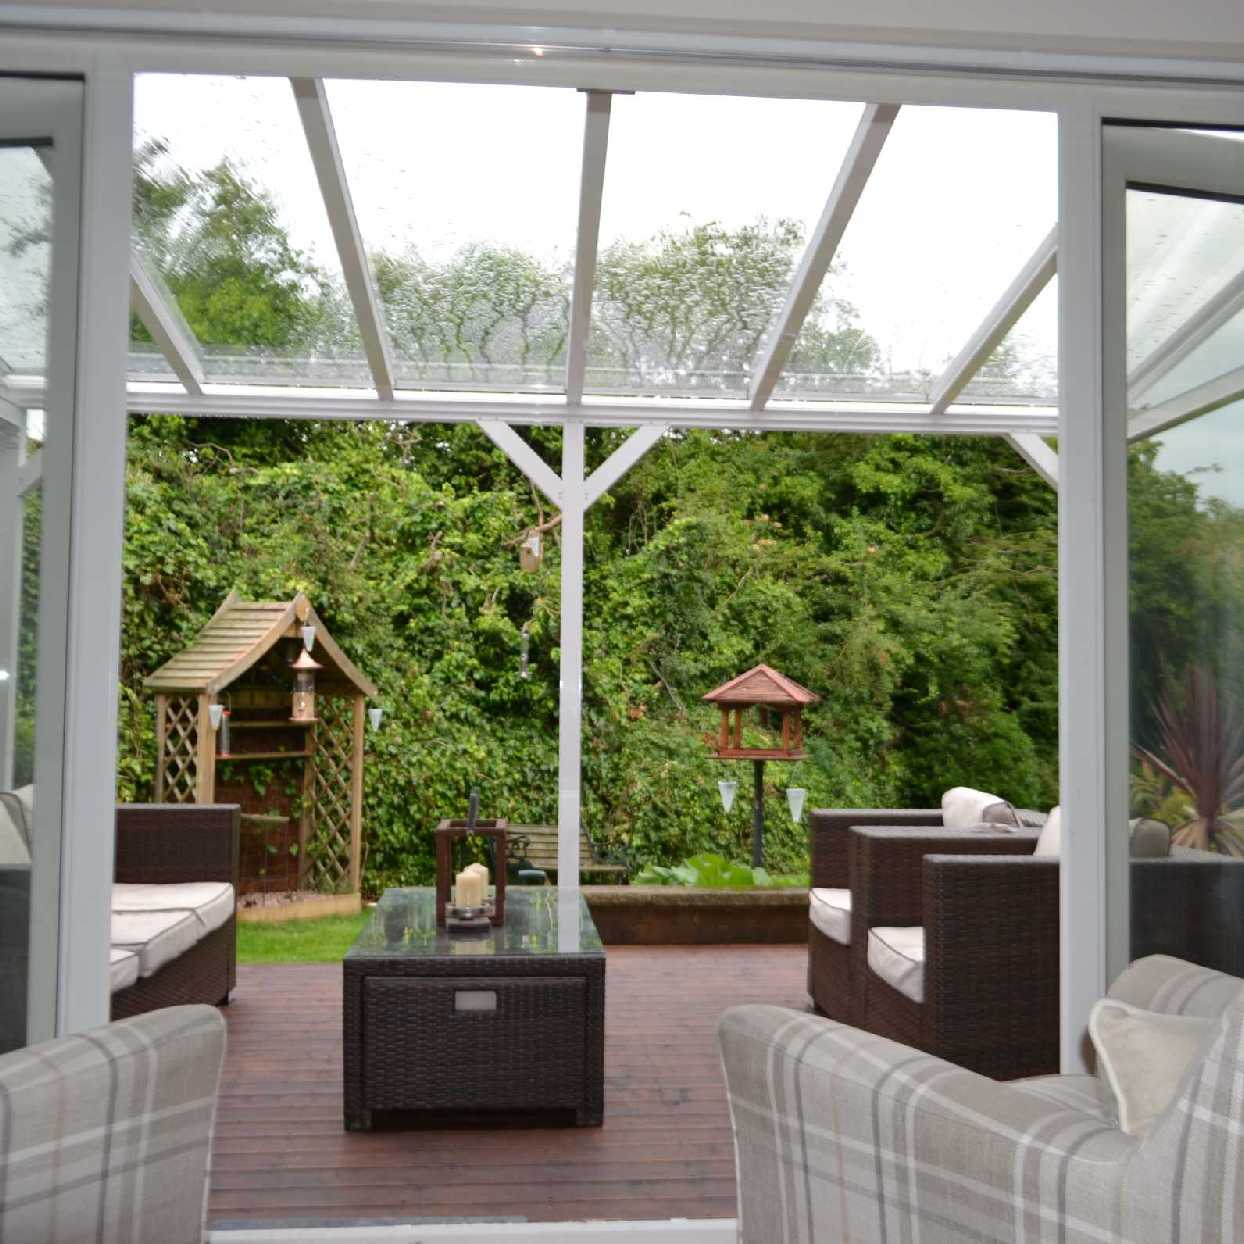 Great selection of Omega Smart Lean-To Canopy UNGLAZED for 6mm Glazing - 6.3m (W) x 3.0m (P), (4) Supporting Posts